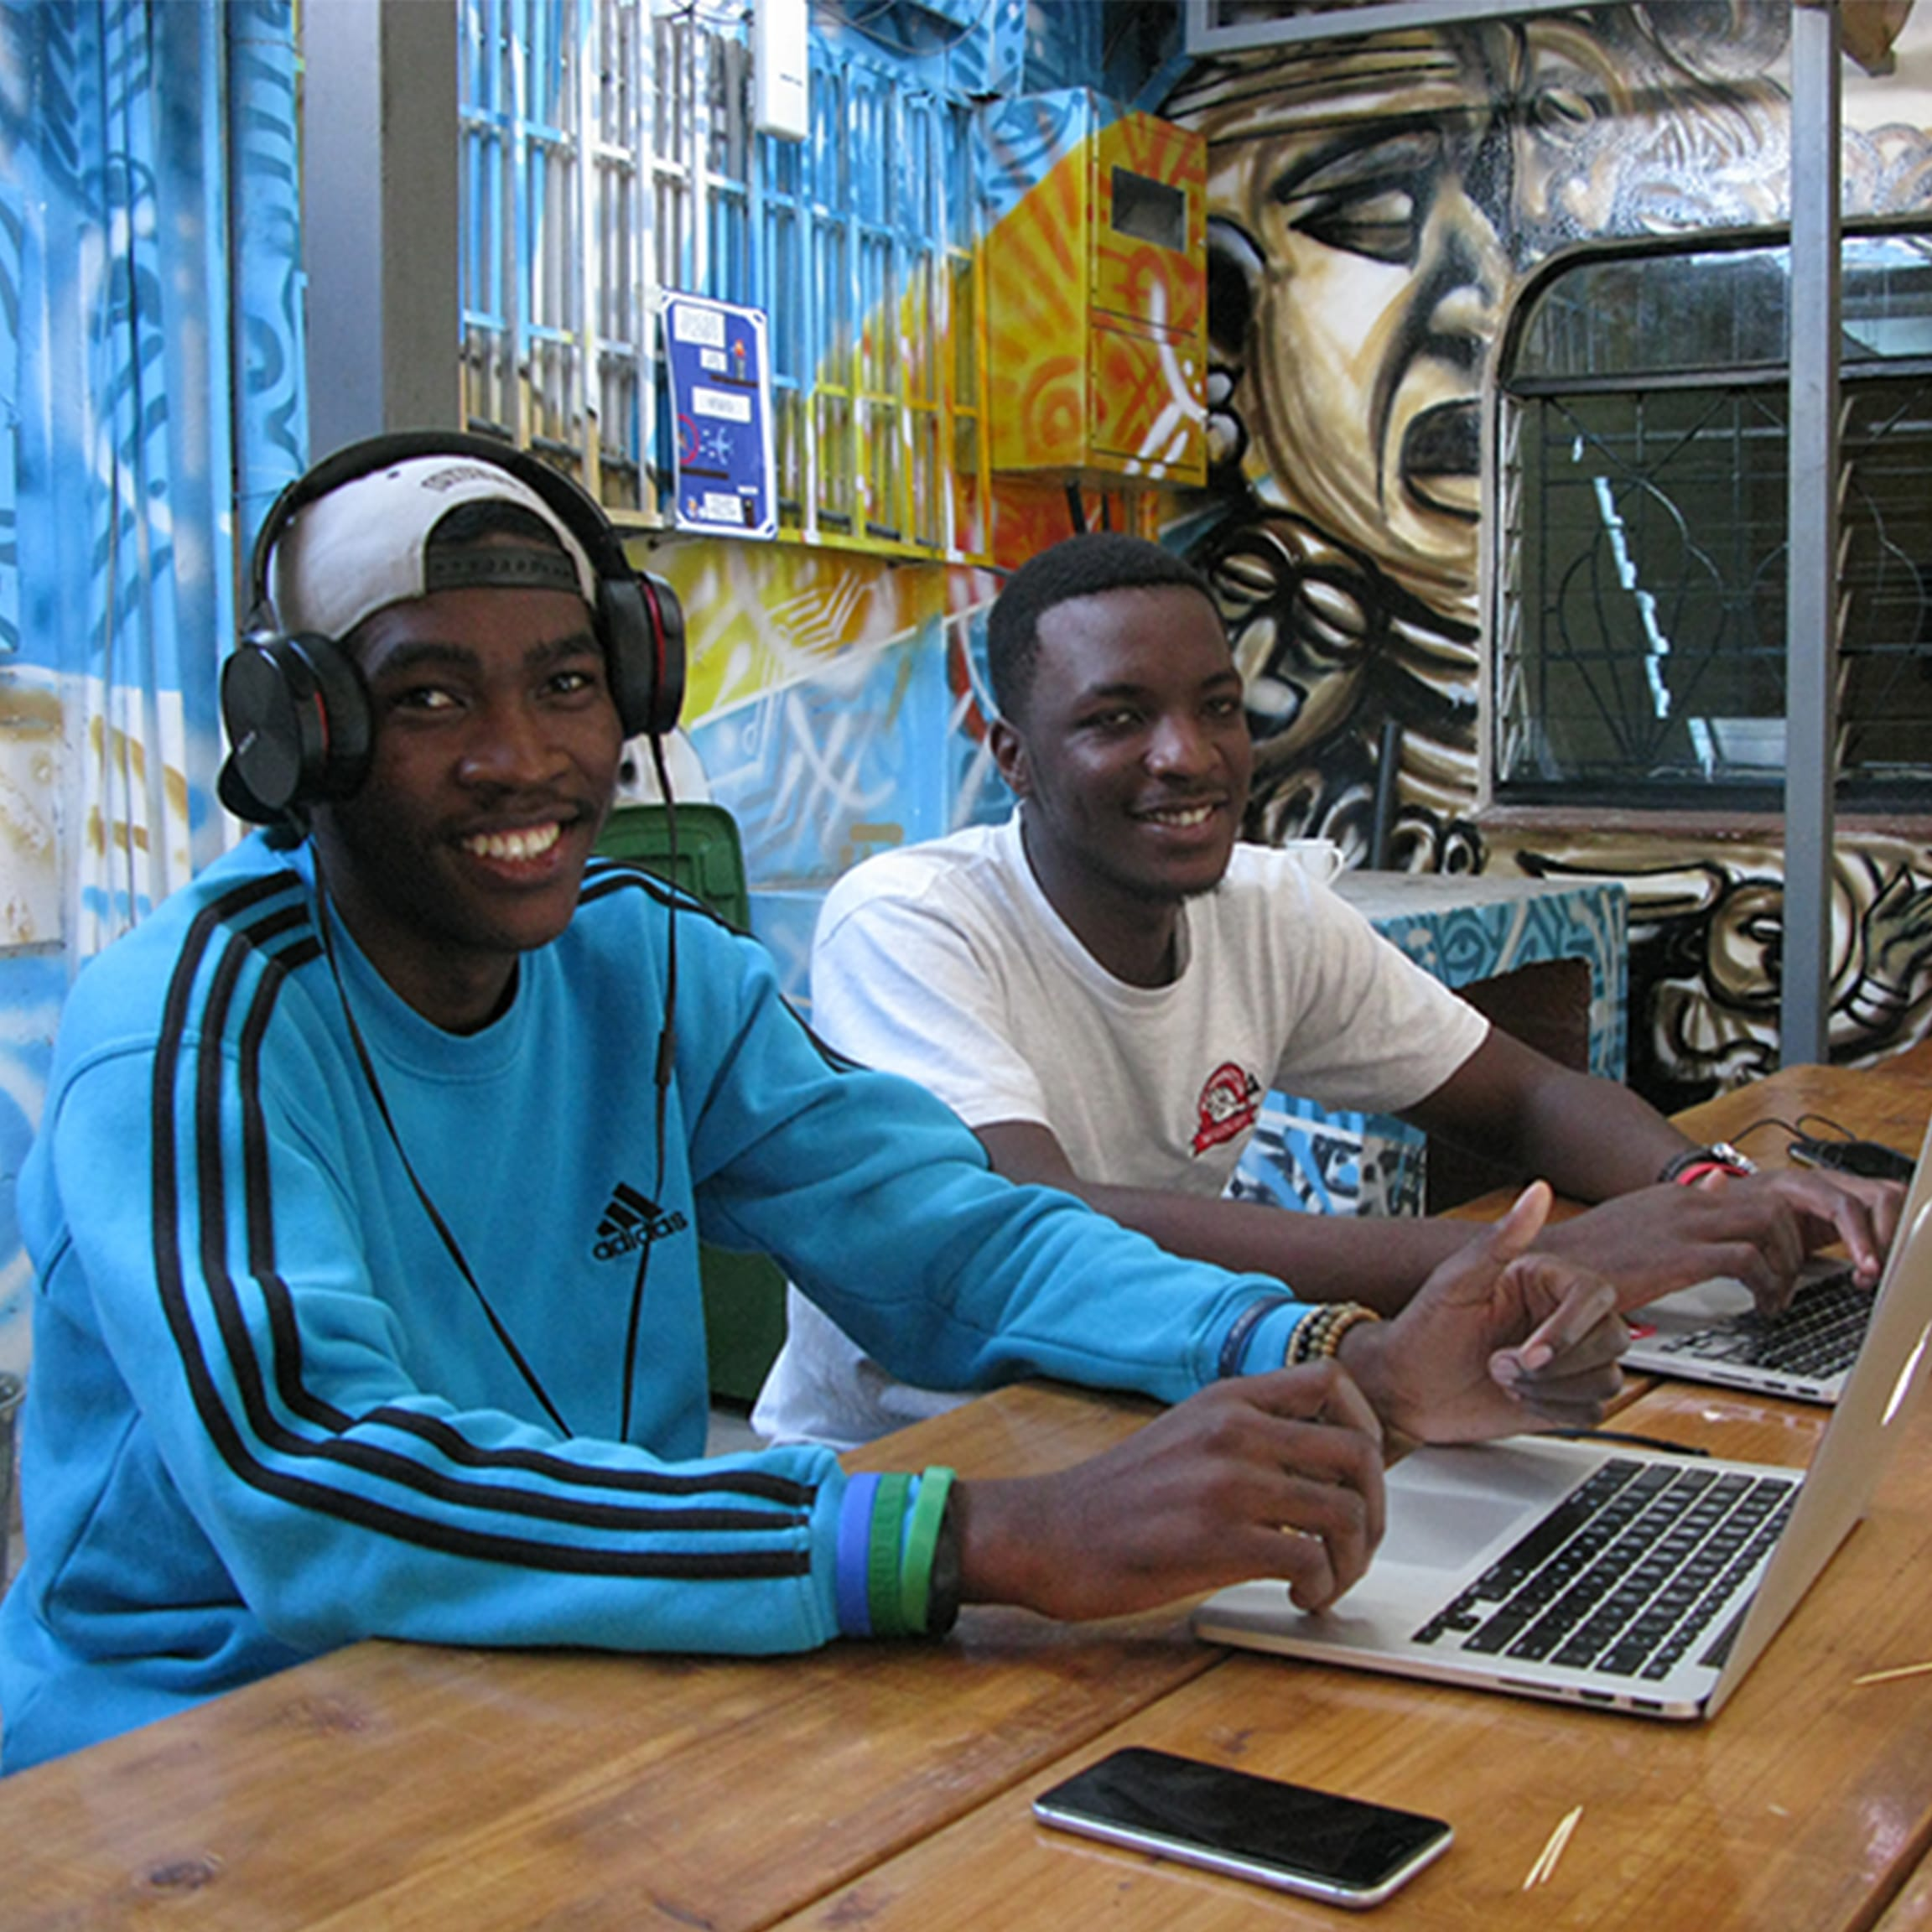 Two young men sat with laptops